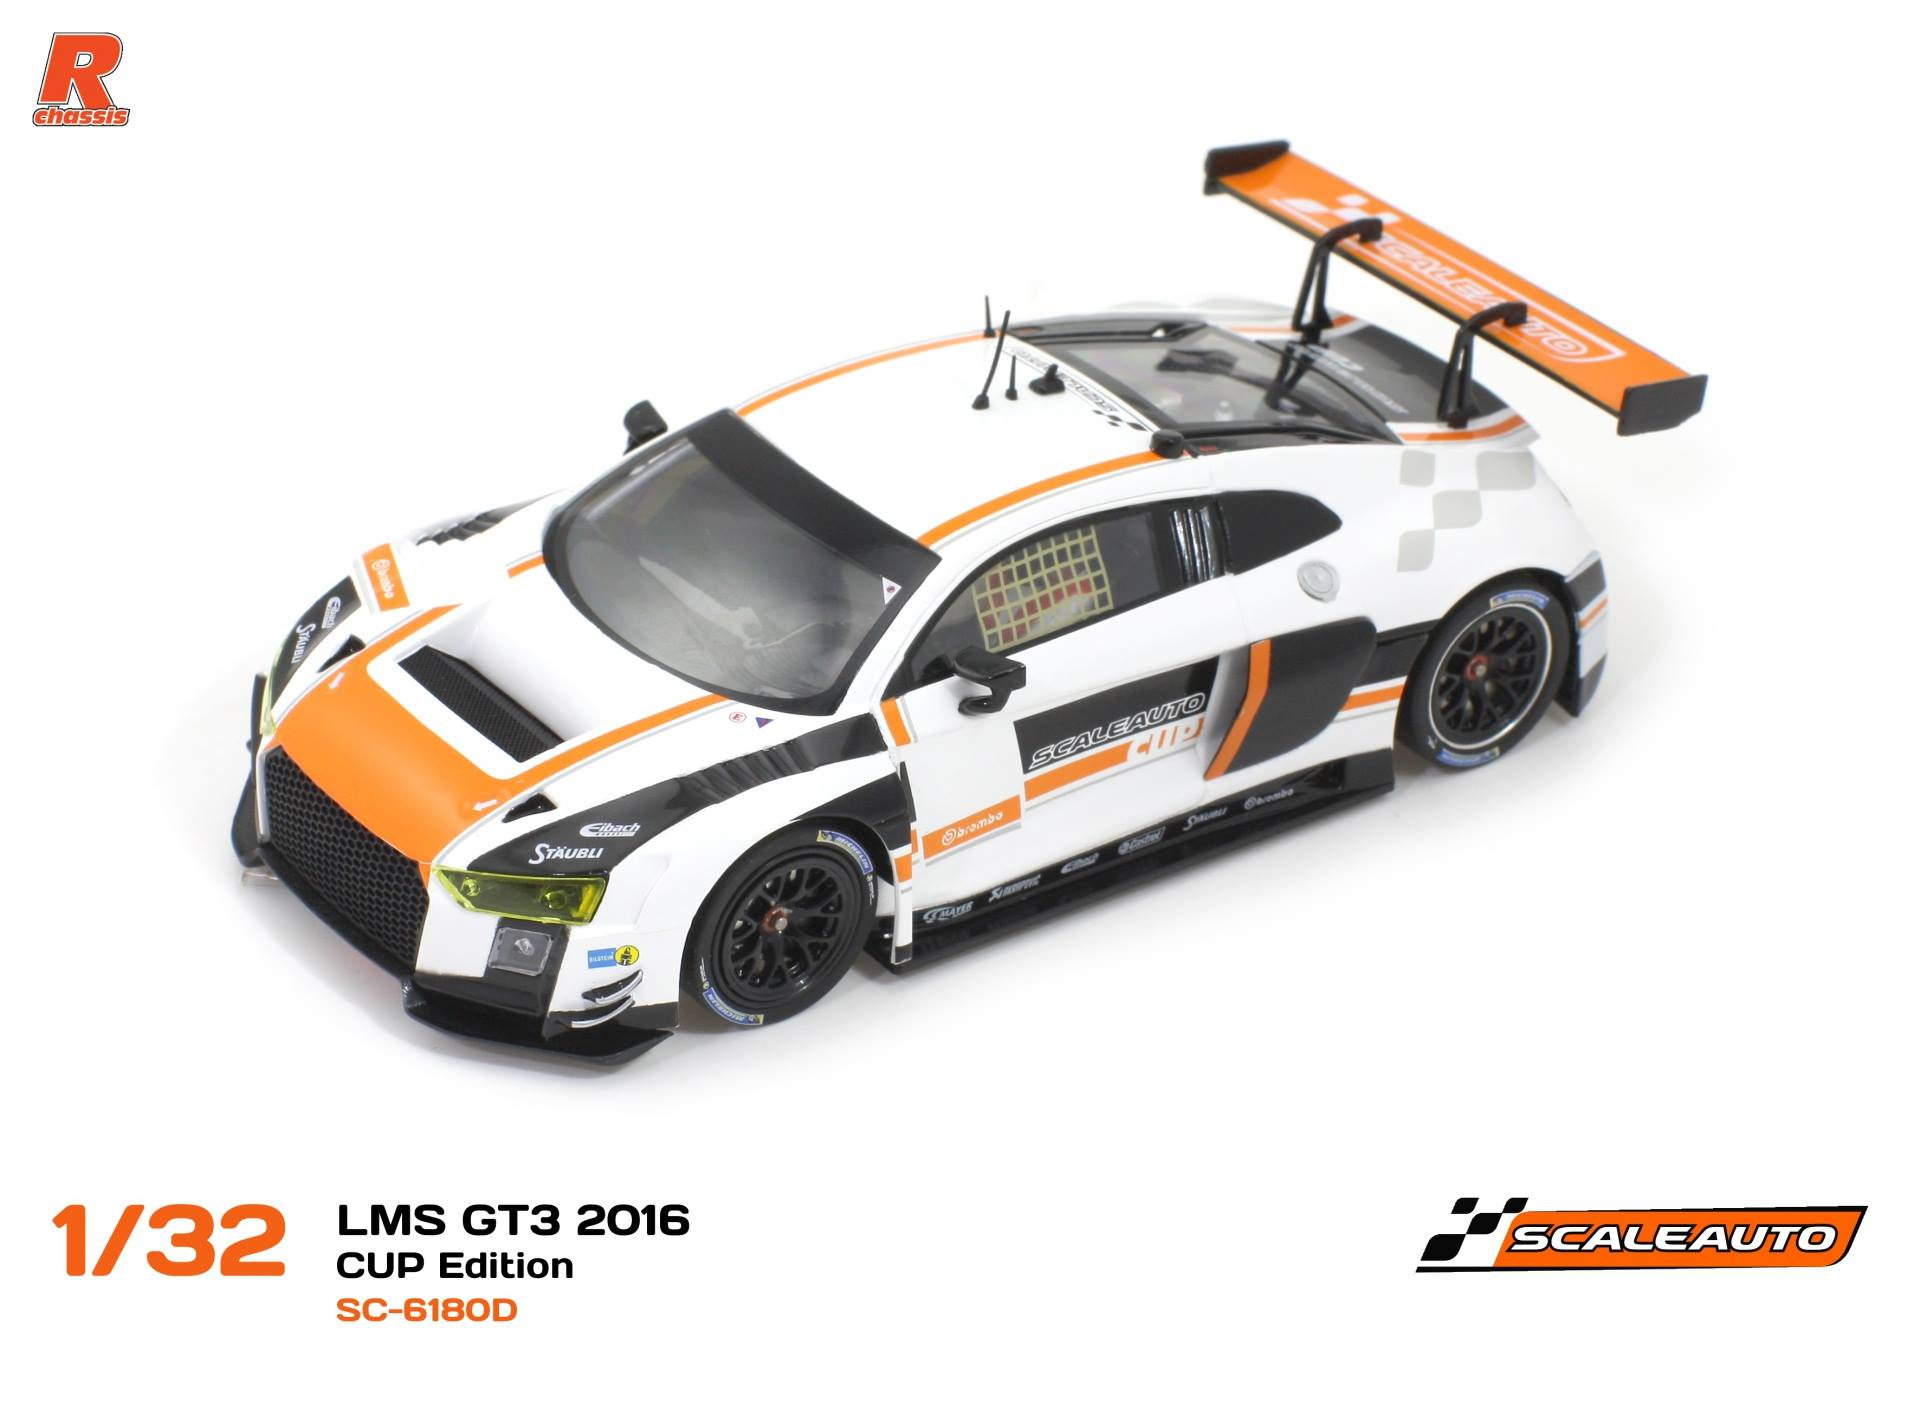 SC-6180 D LMS Gt3 Cup édition blanc / Orange R-version AW.